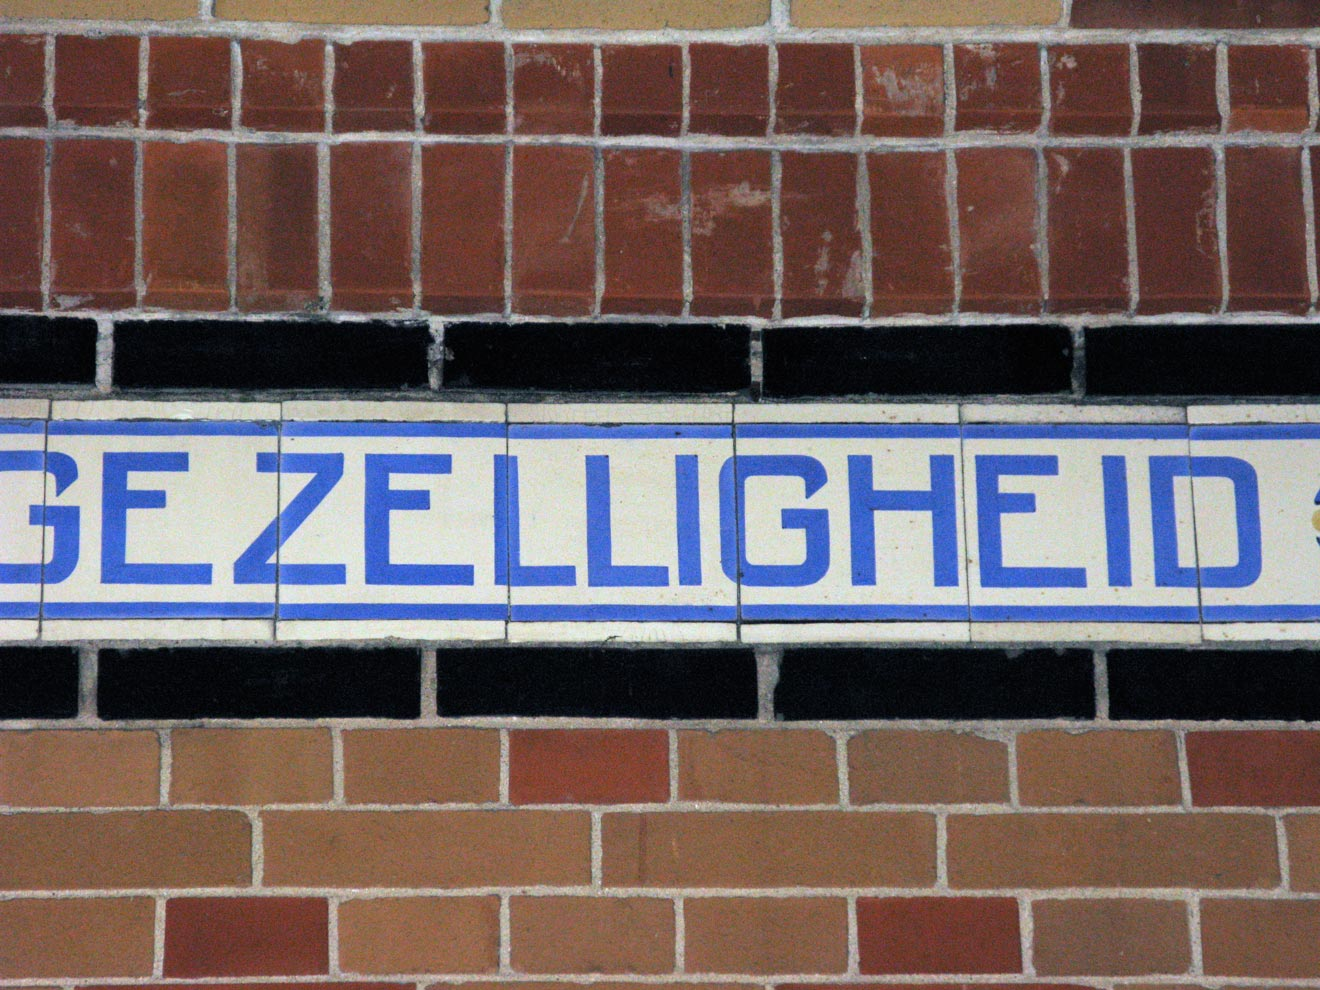 The lettering on the frieze is not constrained to the rhythm of the tiles but is spaced in a much more sophisticated manner.